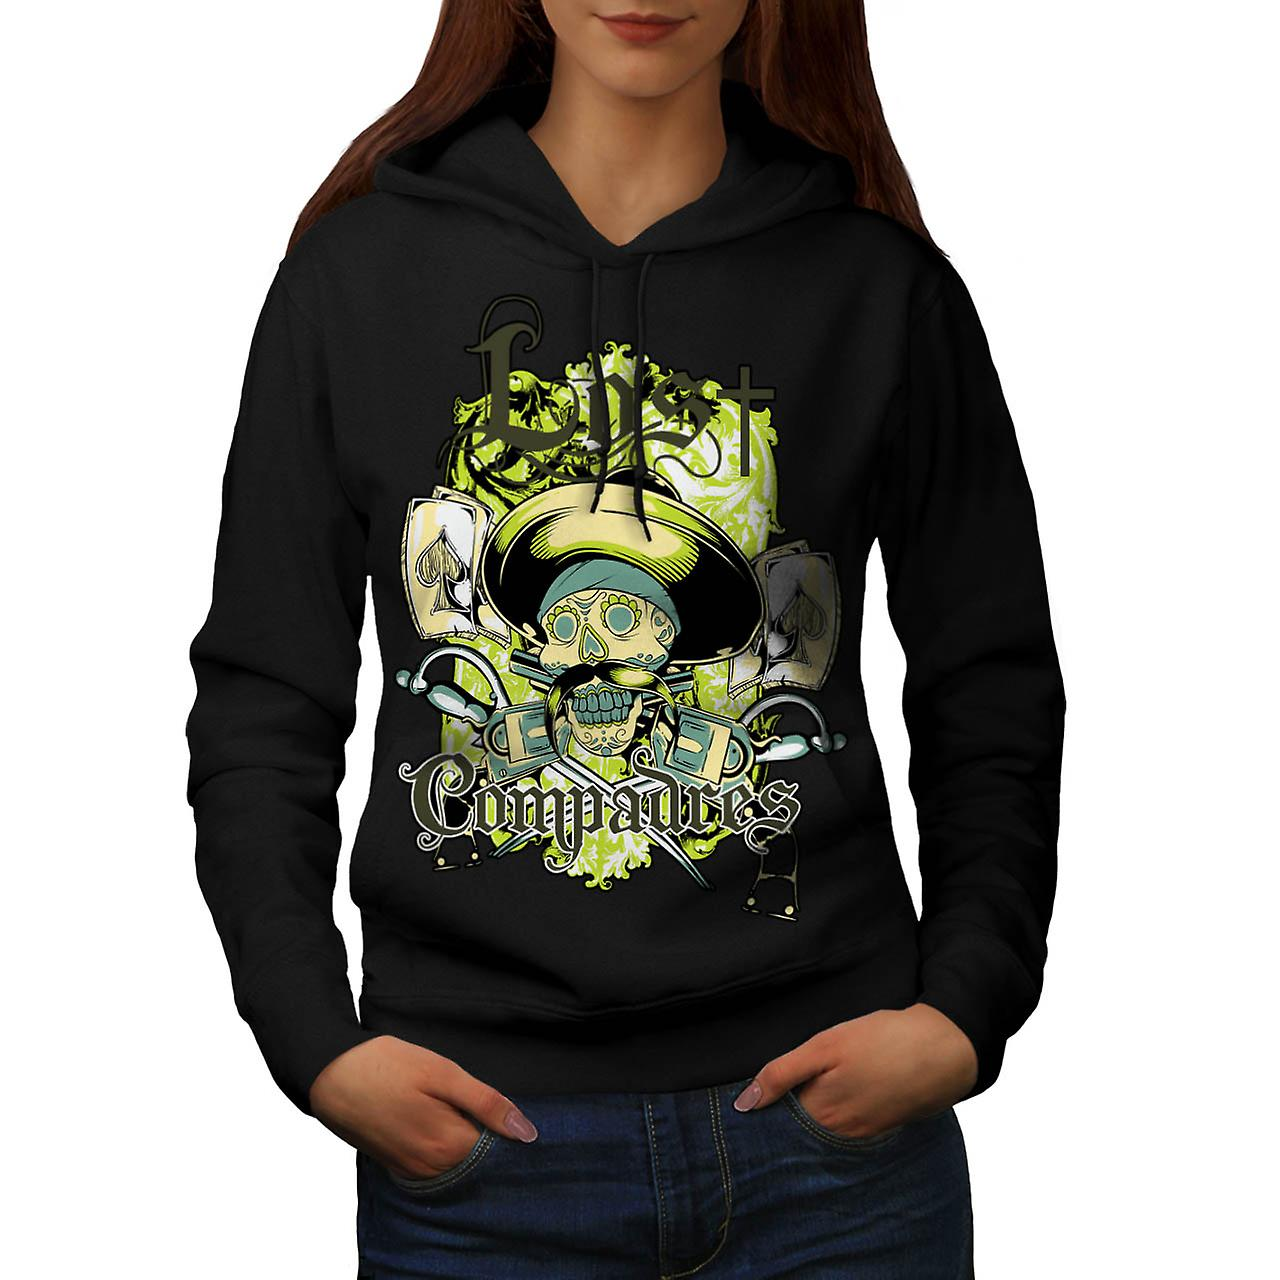 Lost Compadres Team Mexico Man Women Black Hoodie | Wellcoda